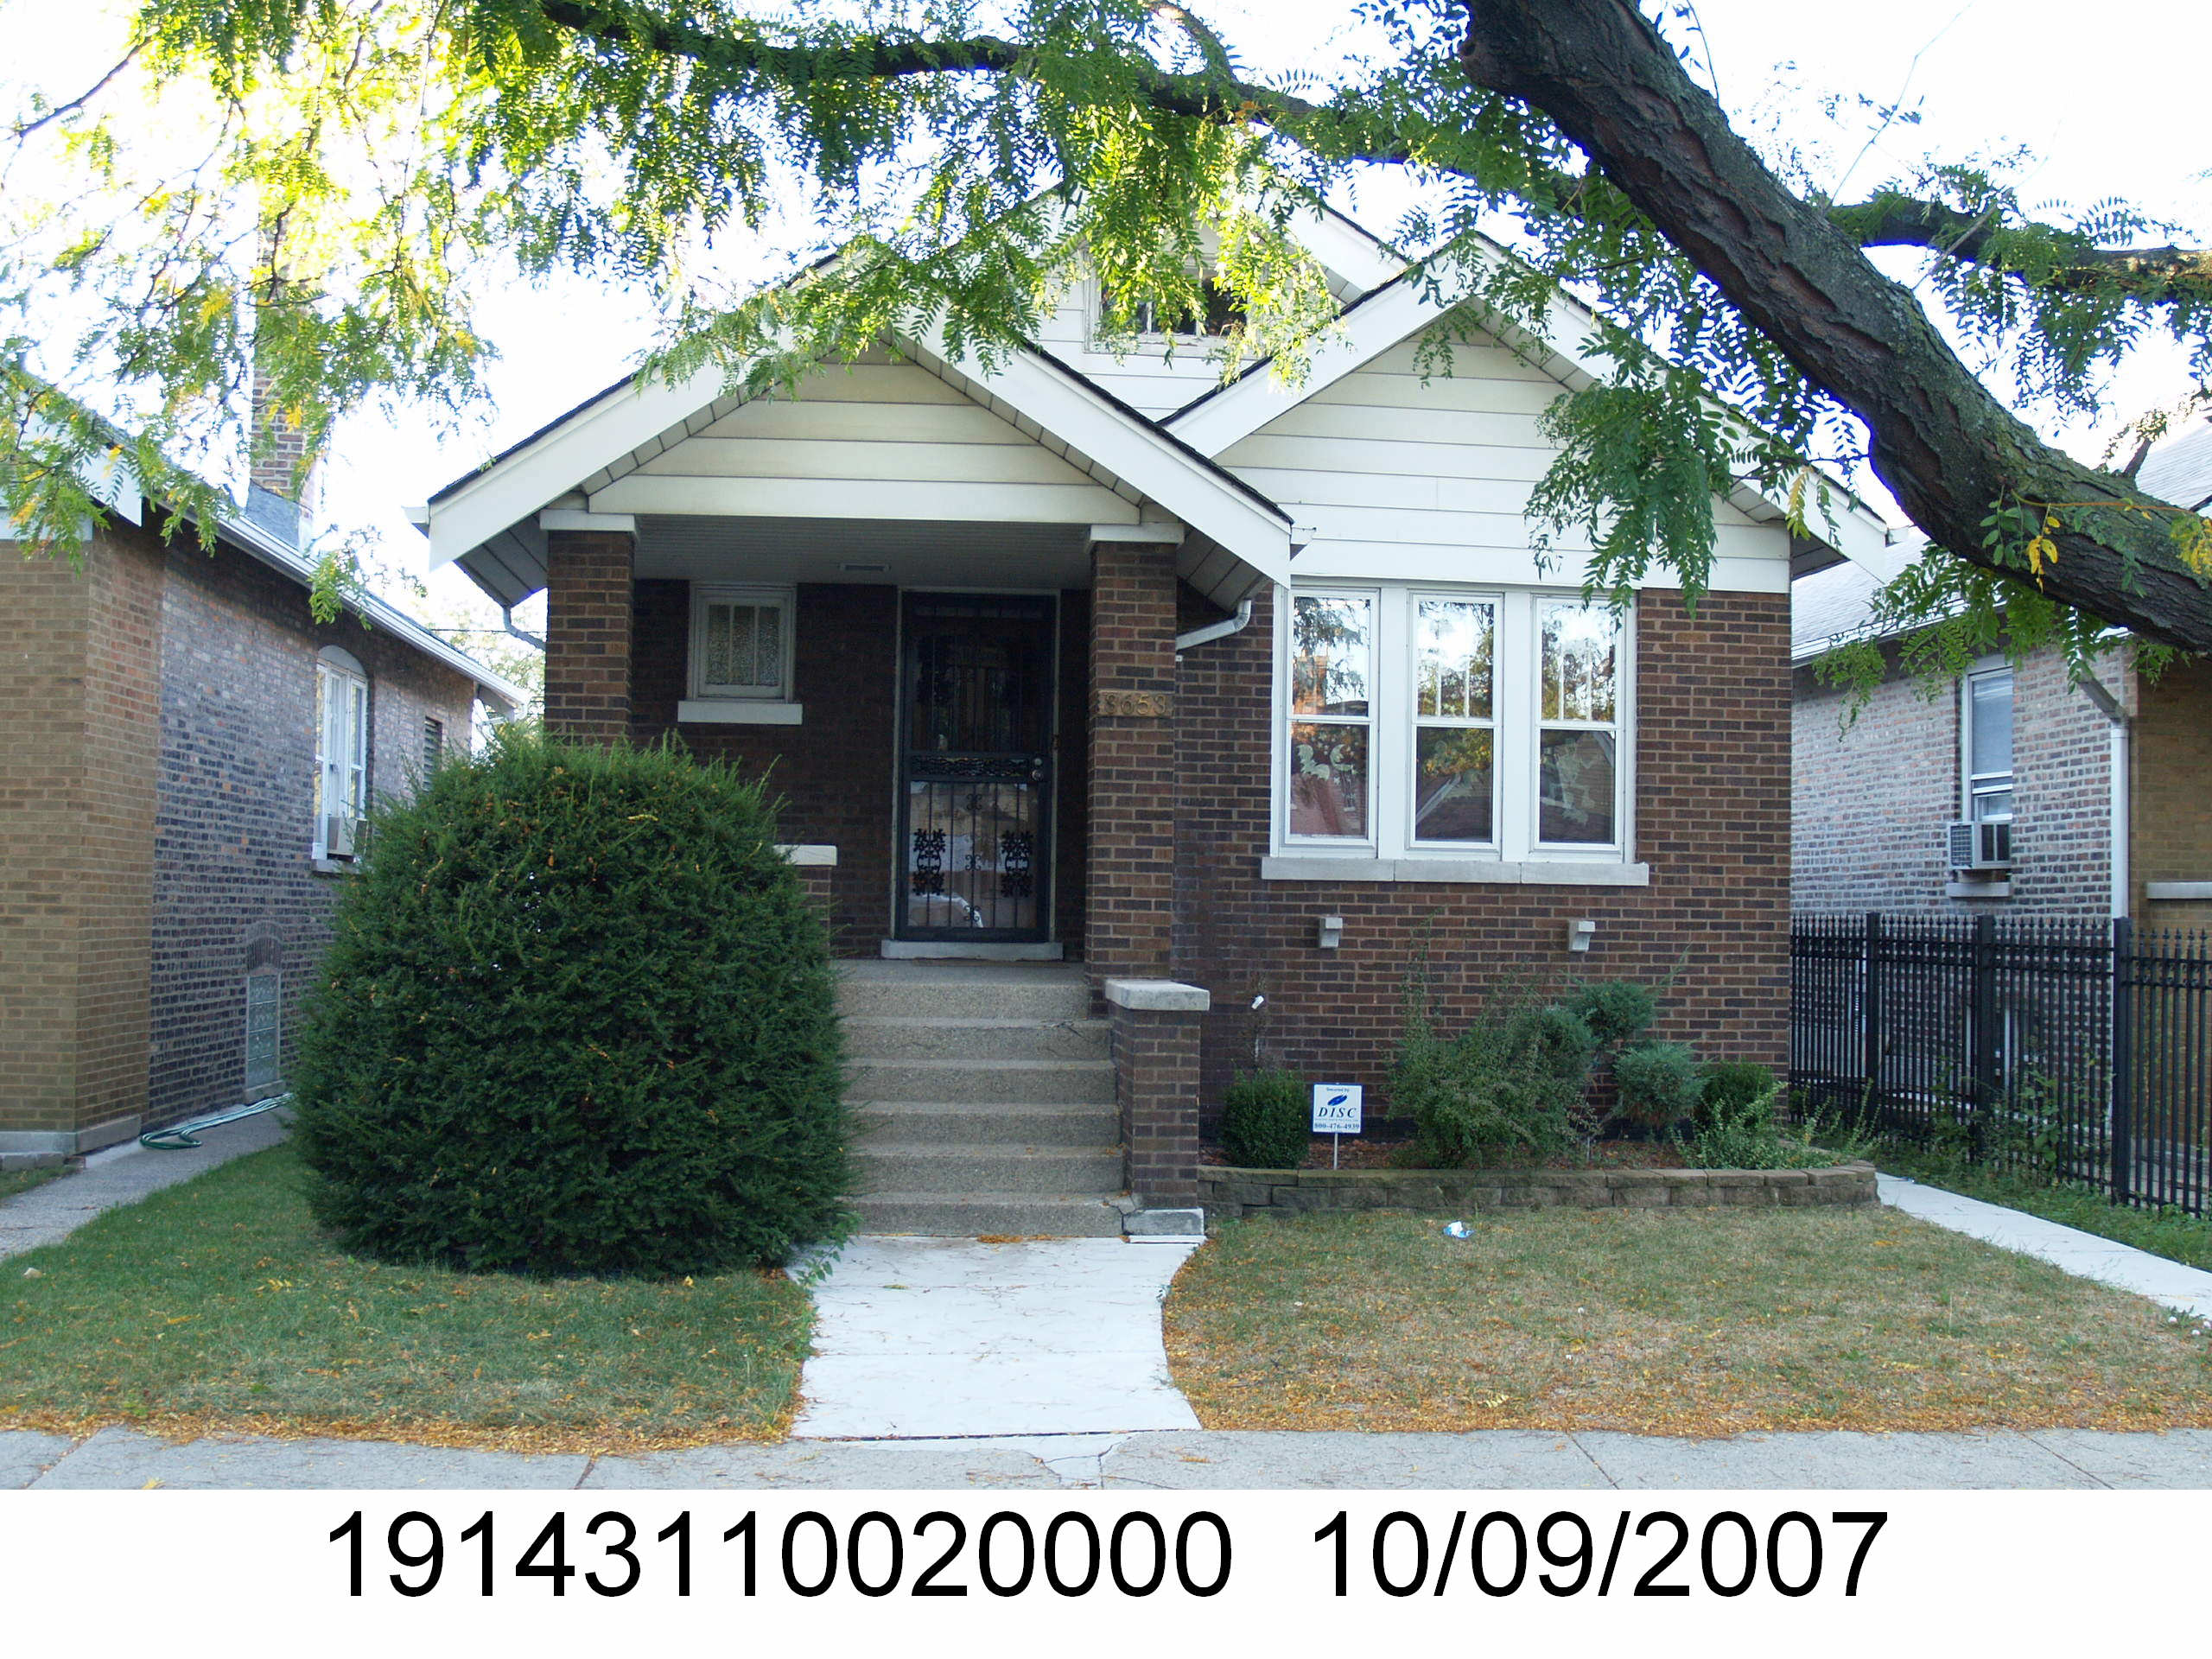 Property Tax Details - 3653 W 60th St, Chicago, IL - PIN ...